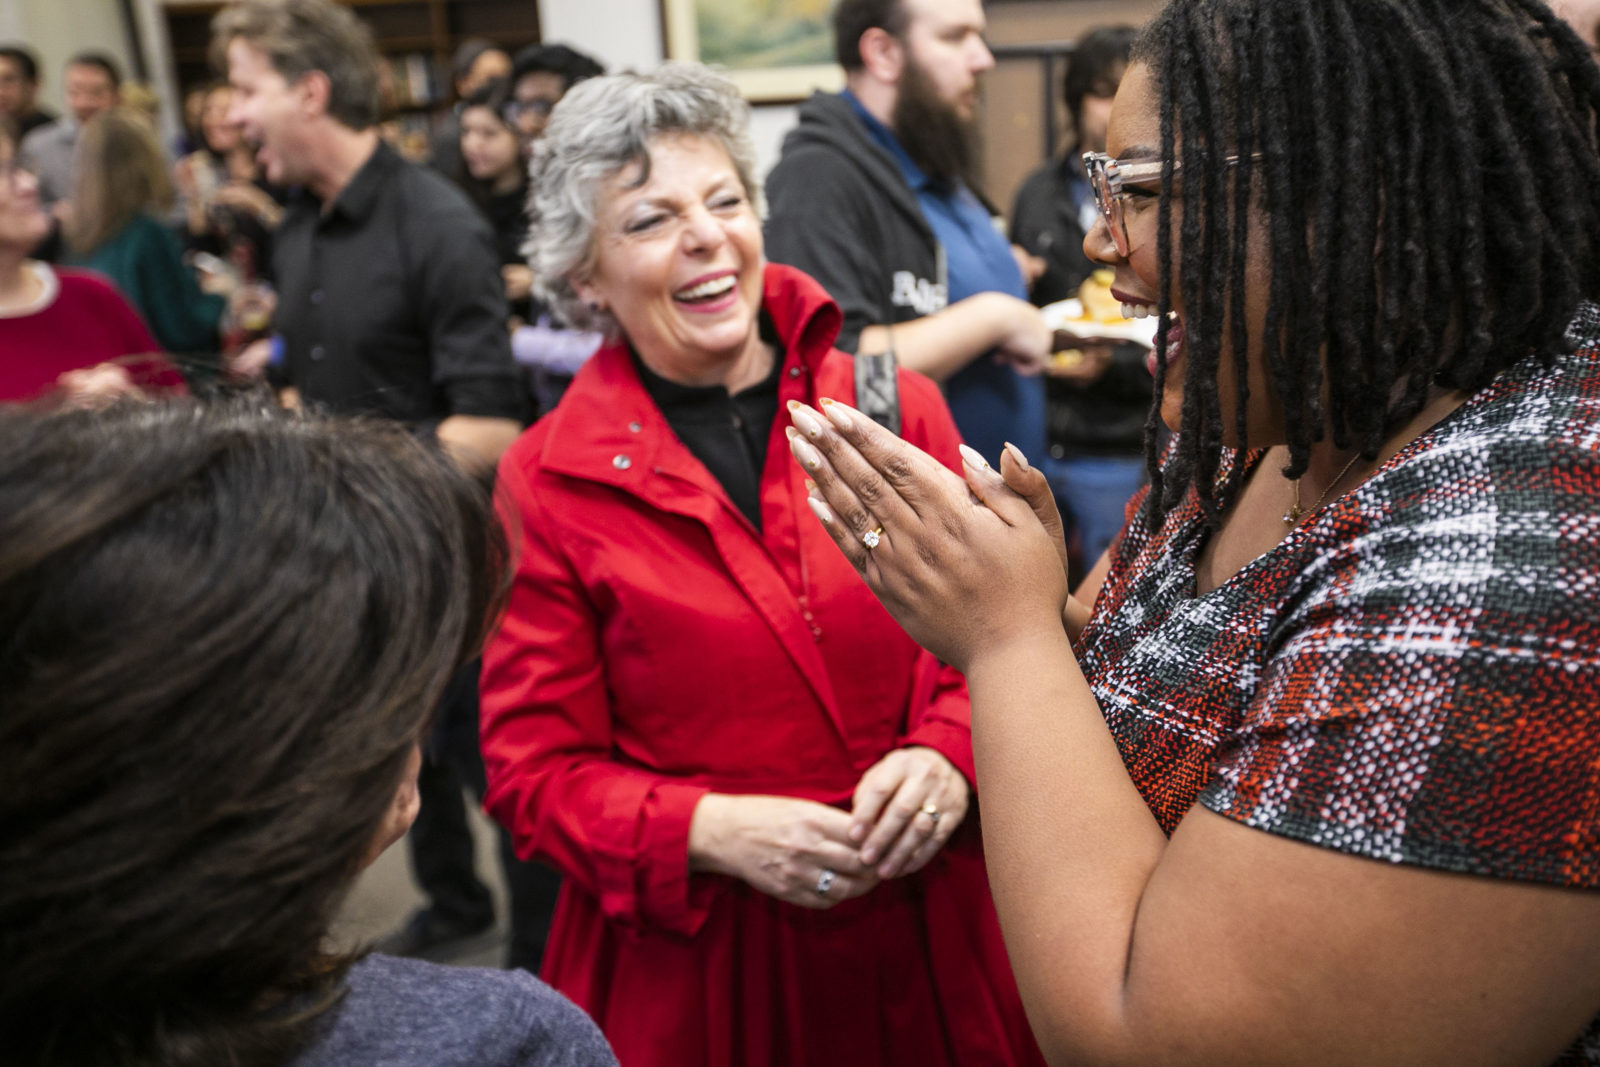 More than 60 faculty and staff from the department, along with Patricia and Rodes Hart Dean of Education and Human Development Camilla P. Benbow, were present when Armstead received the Heart and Soul Staff Appreciation Award. (Anne Rayner/Vanderbilt)